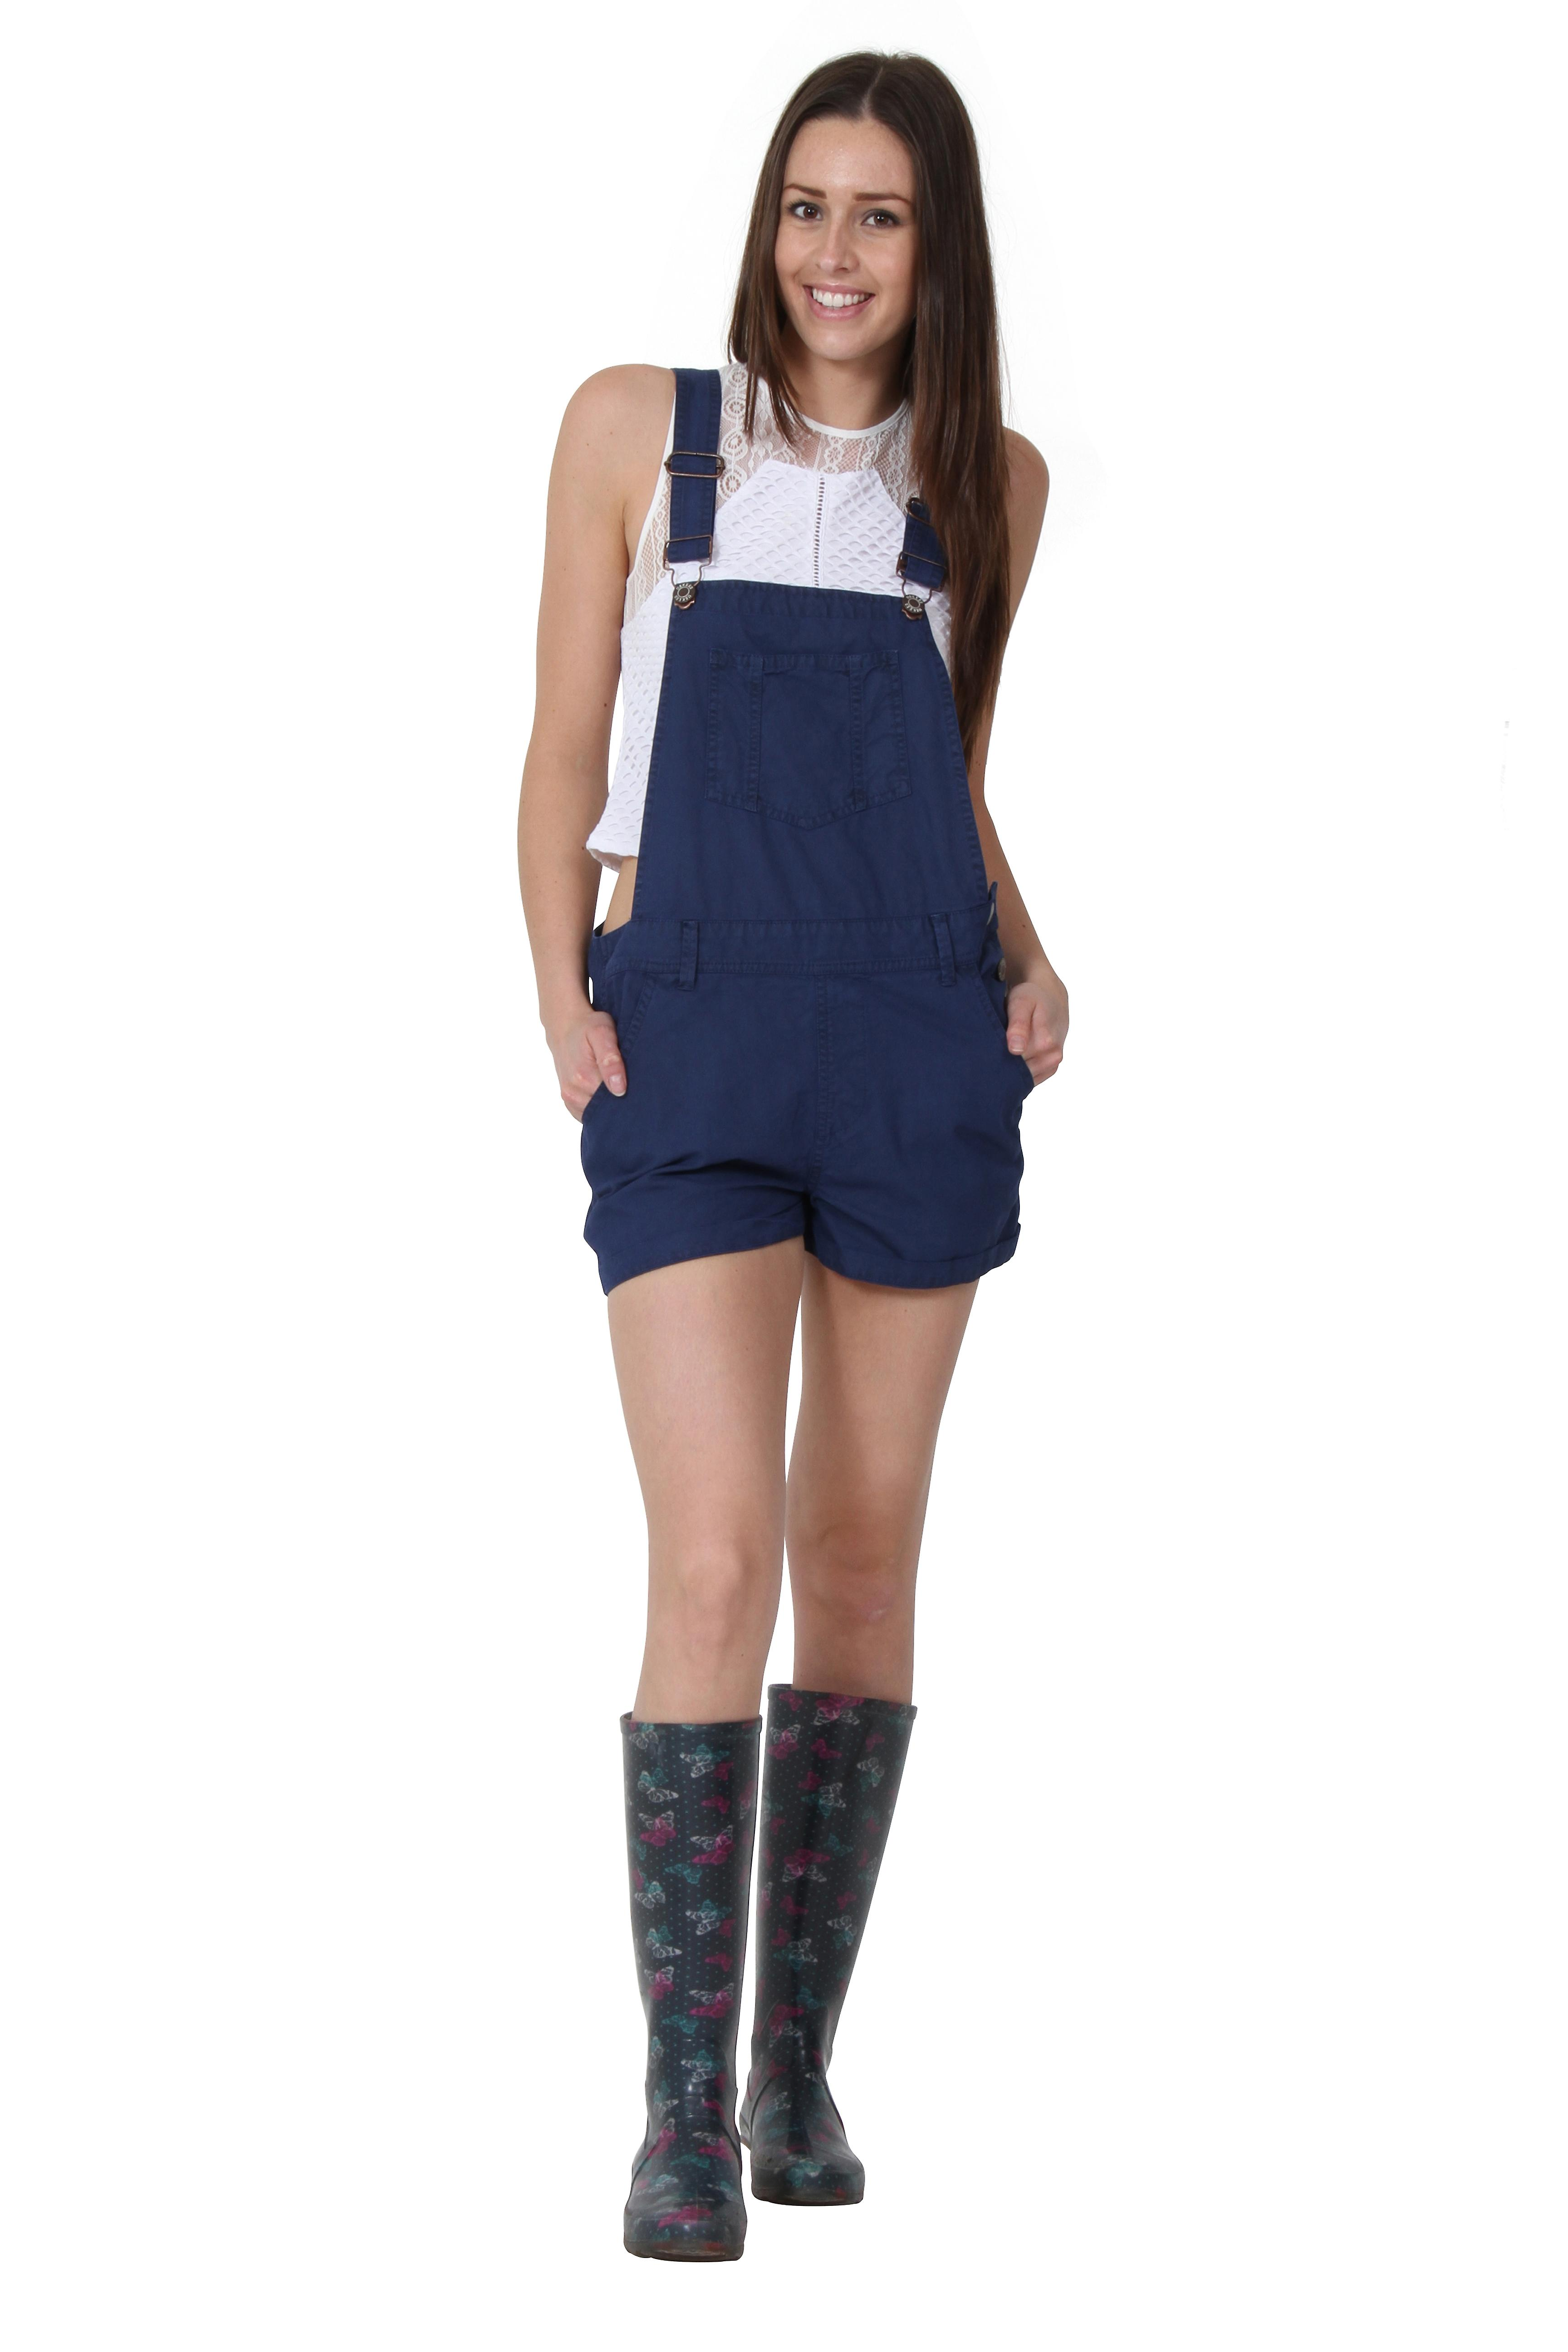 USKEES ANNA Oversized Dungaree Shorts Loose fit Cotton bib overall shorts